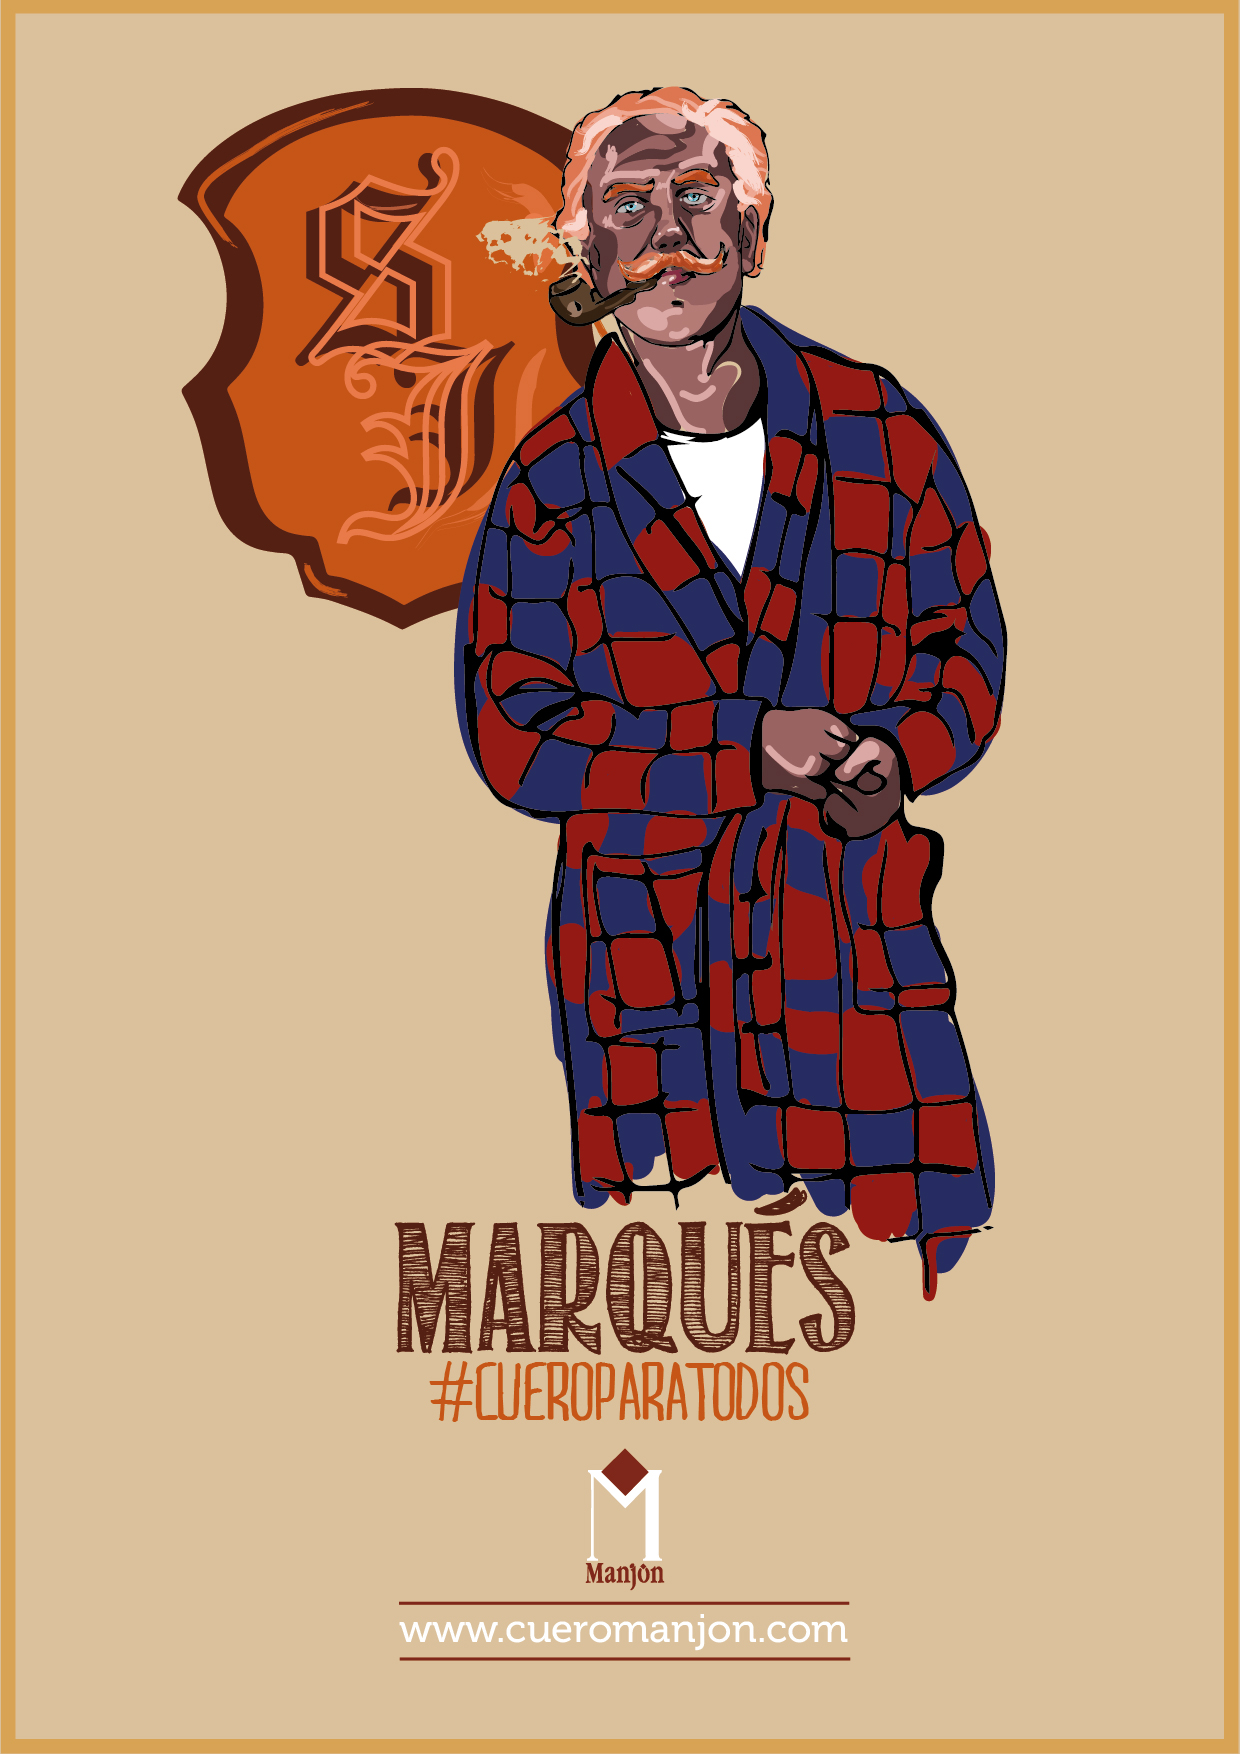 CPT Marques